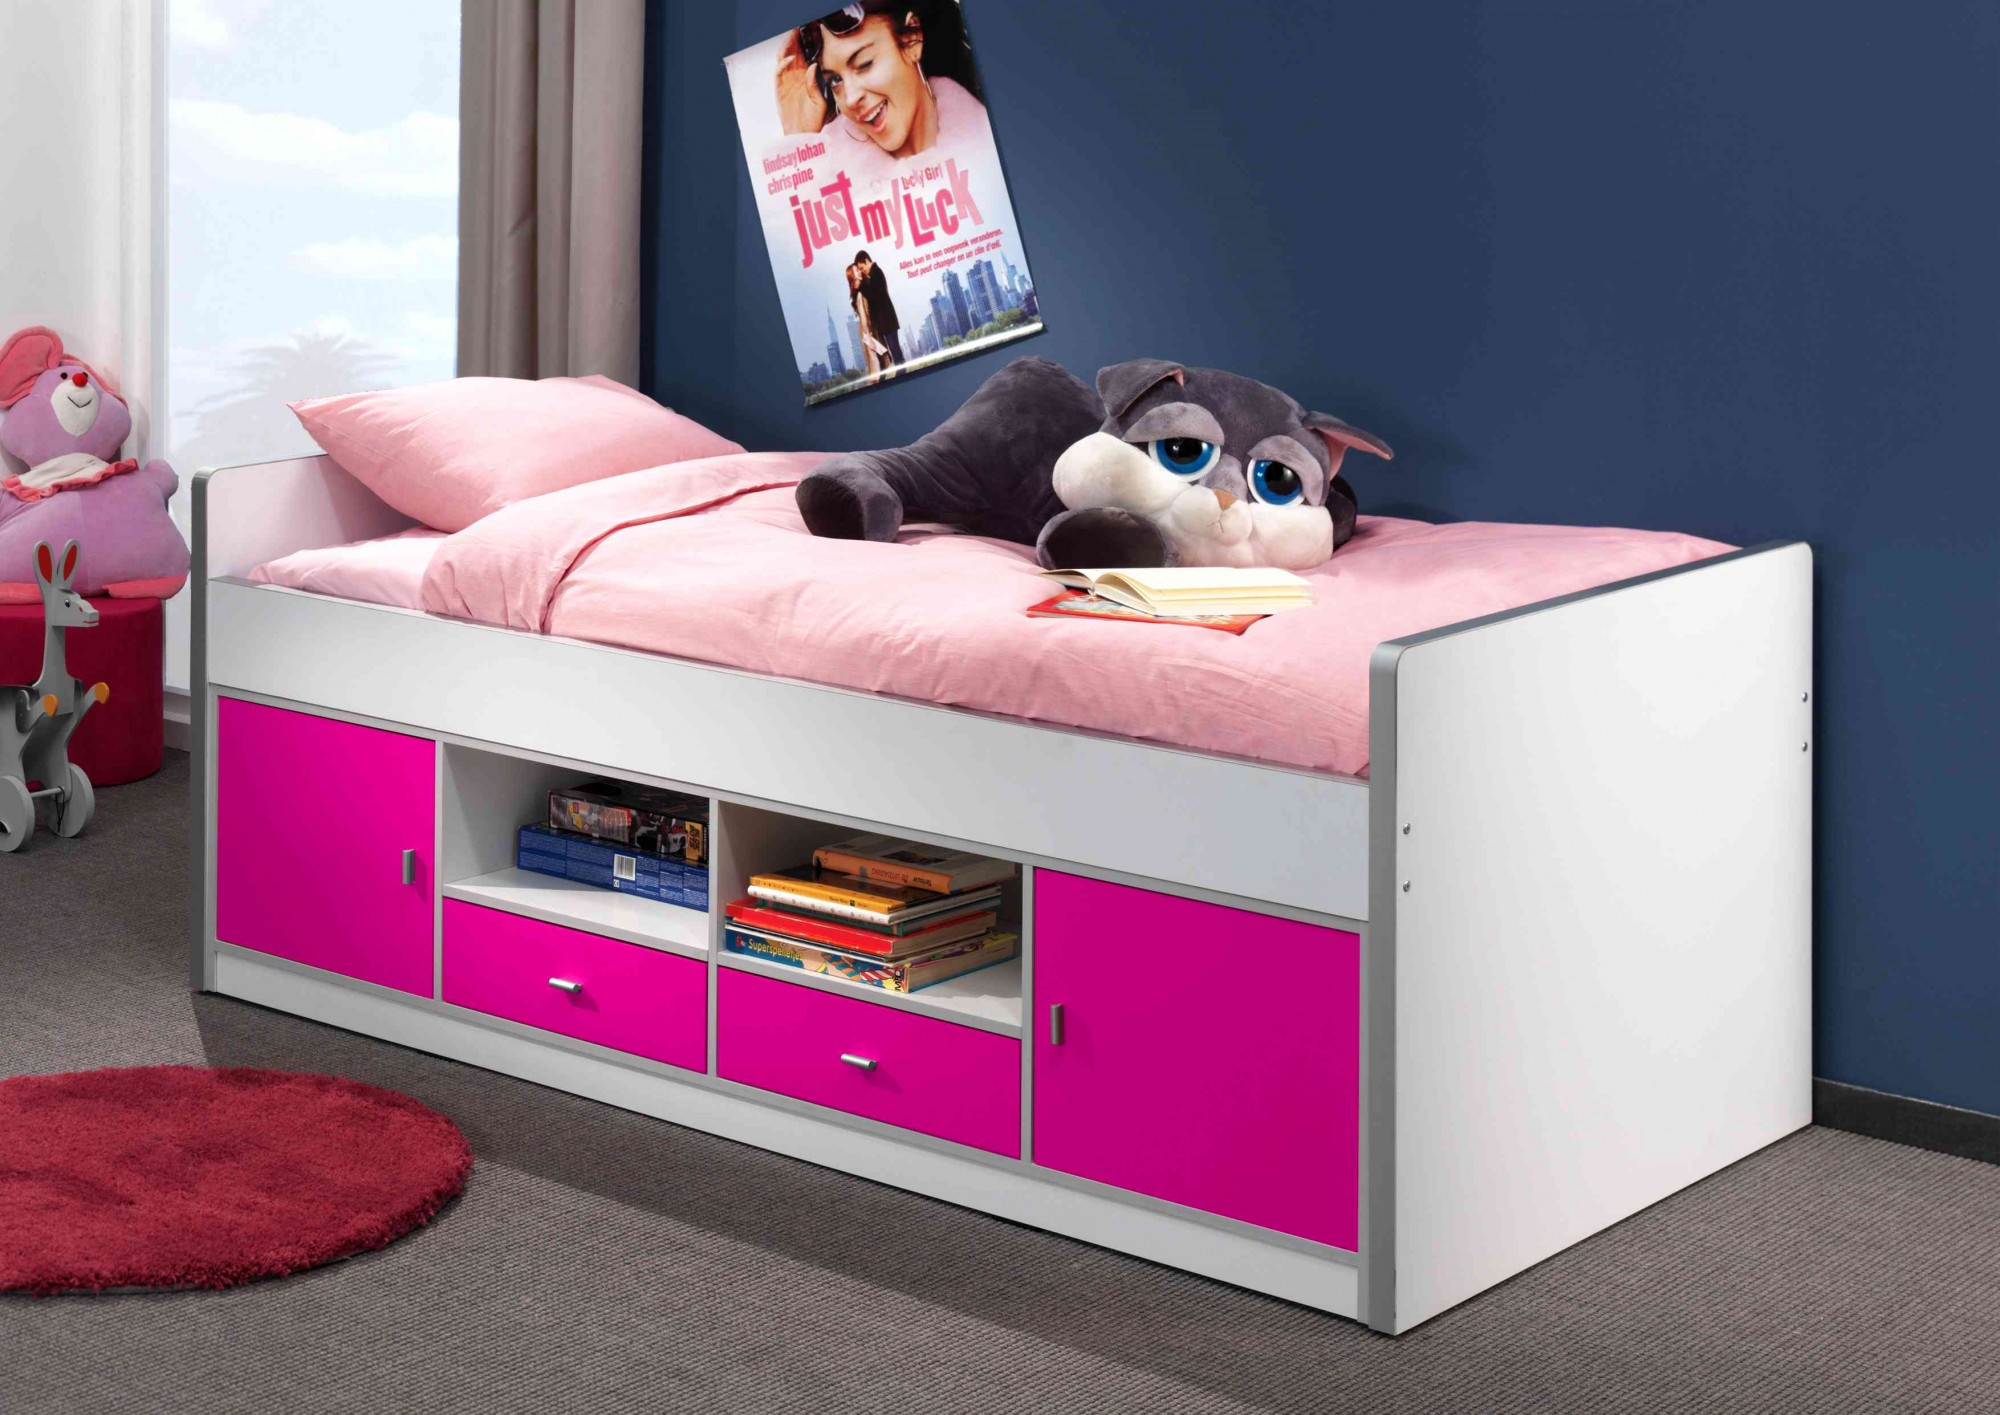 neu kojenbett bonny kinderbett einzelbett mit schubladen 90 x 200 weiss pink ebay. Black Bedroom Furniture Sets. Home Design Ideas